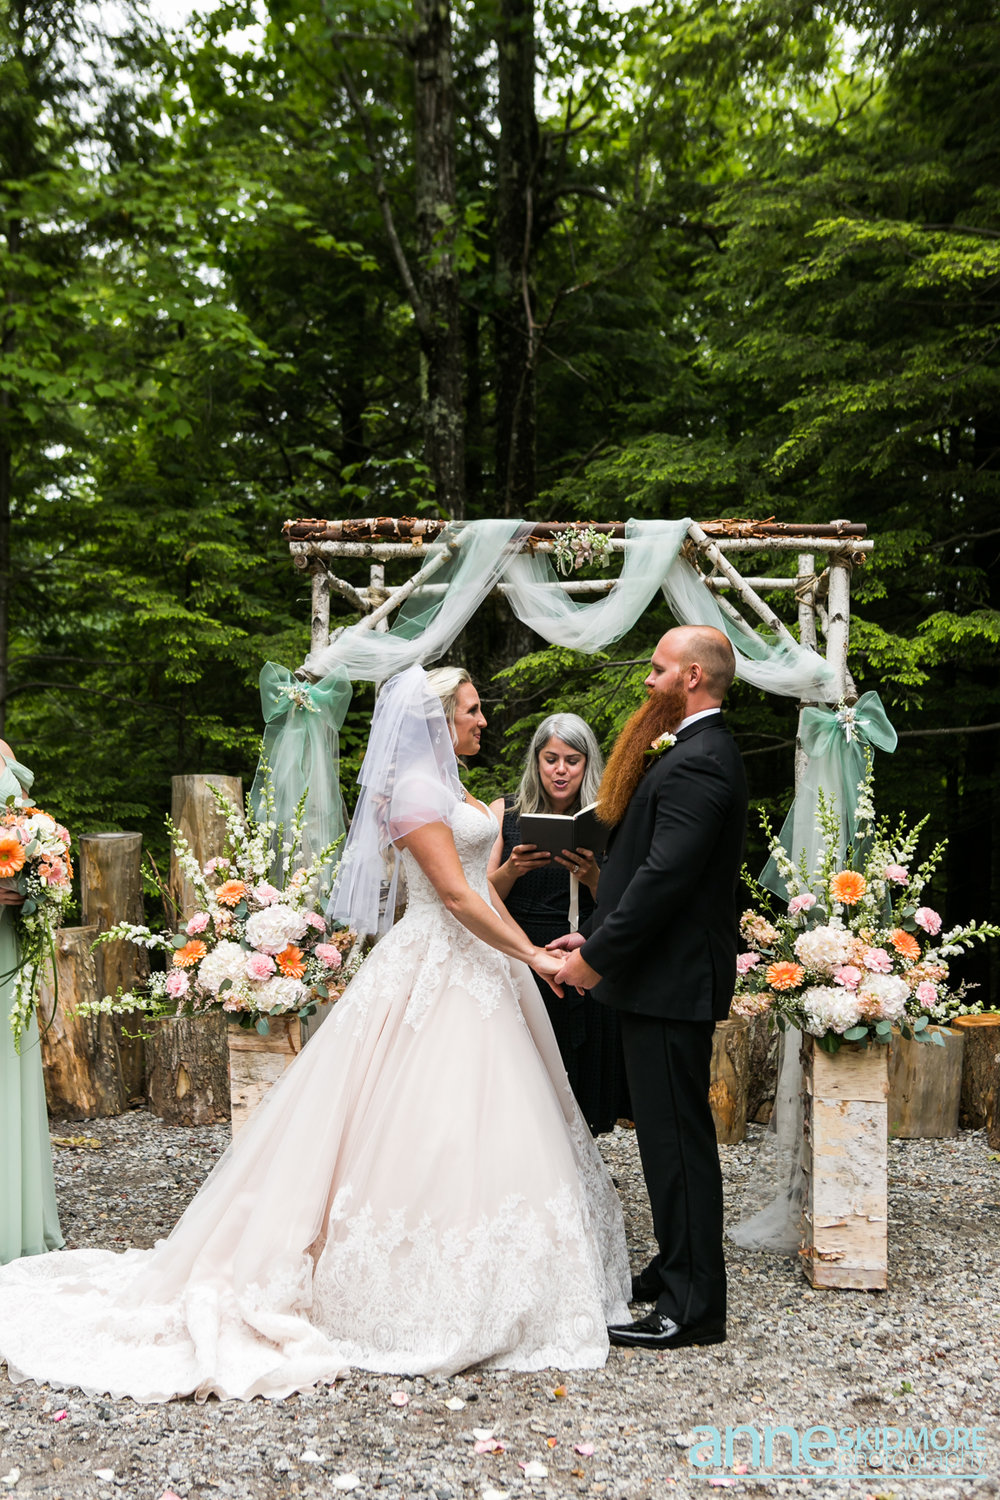 Mark and Barbie say I do at a rustic barn wedding in Norway, Maine officiated by A Sweet Start. Photo by Anne Skidmore Photography